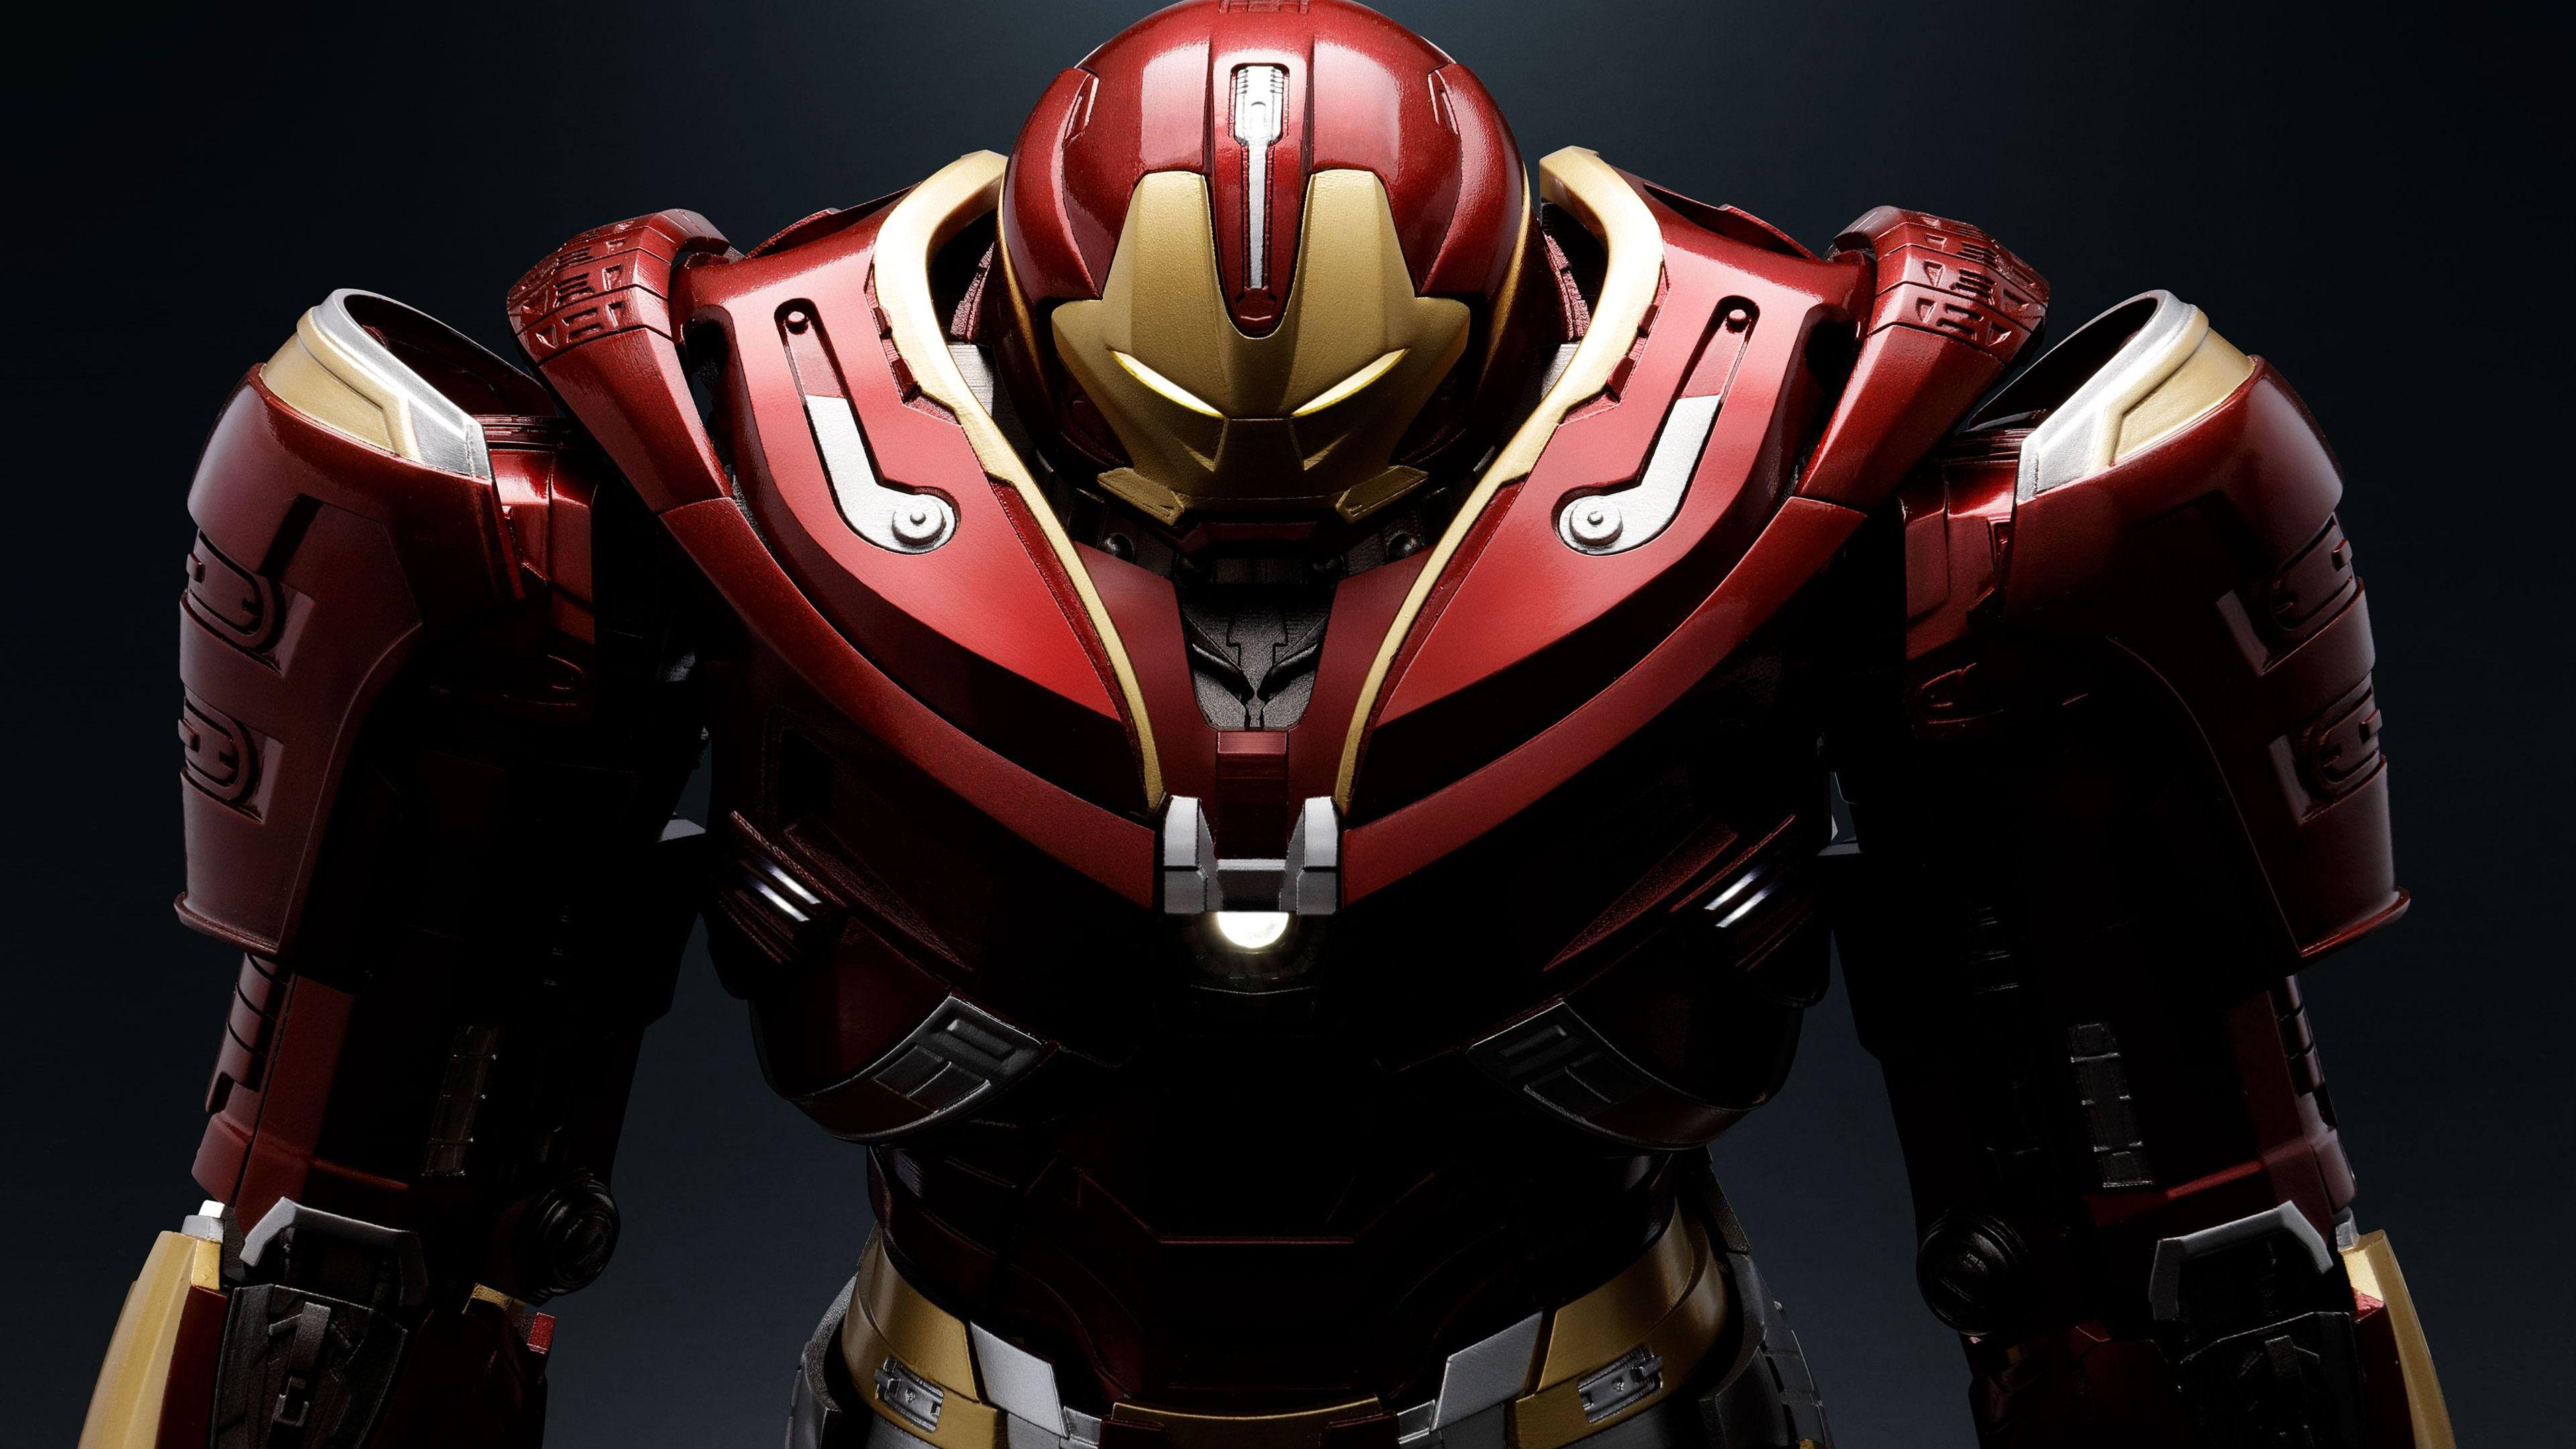 All Iron Man Suits Wallpapers - Wallpaper Cave